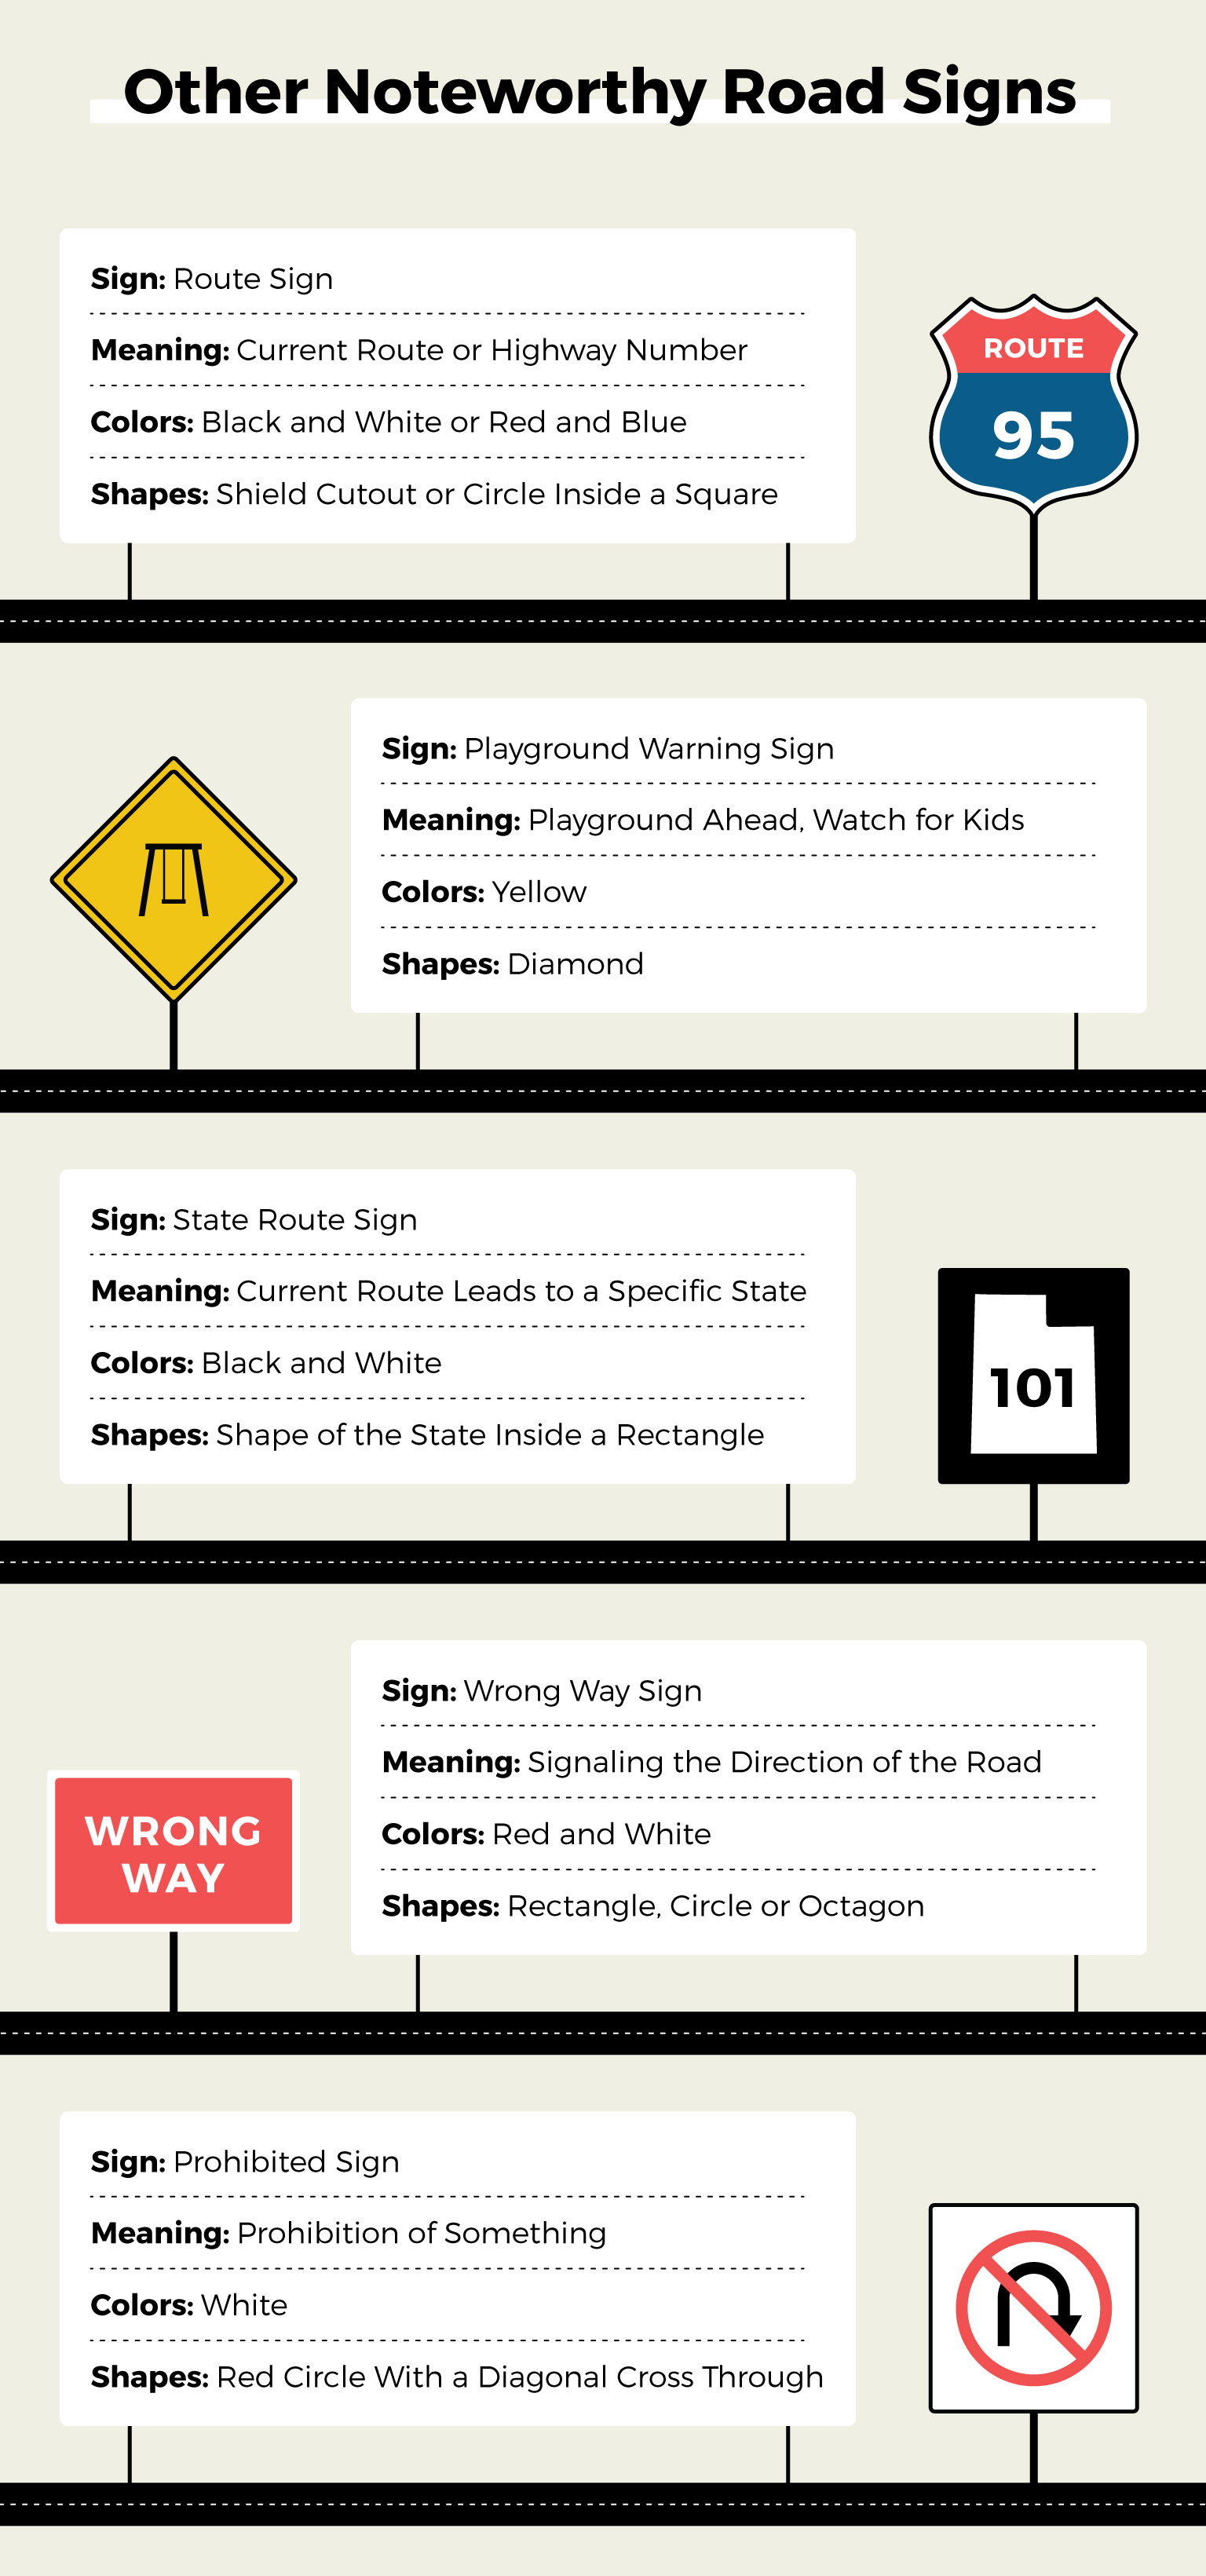 misc road signs to be aware of